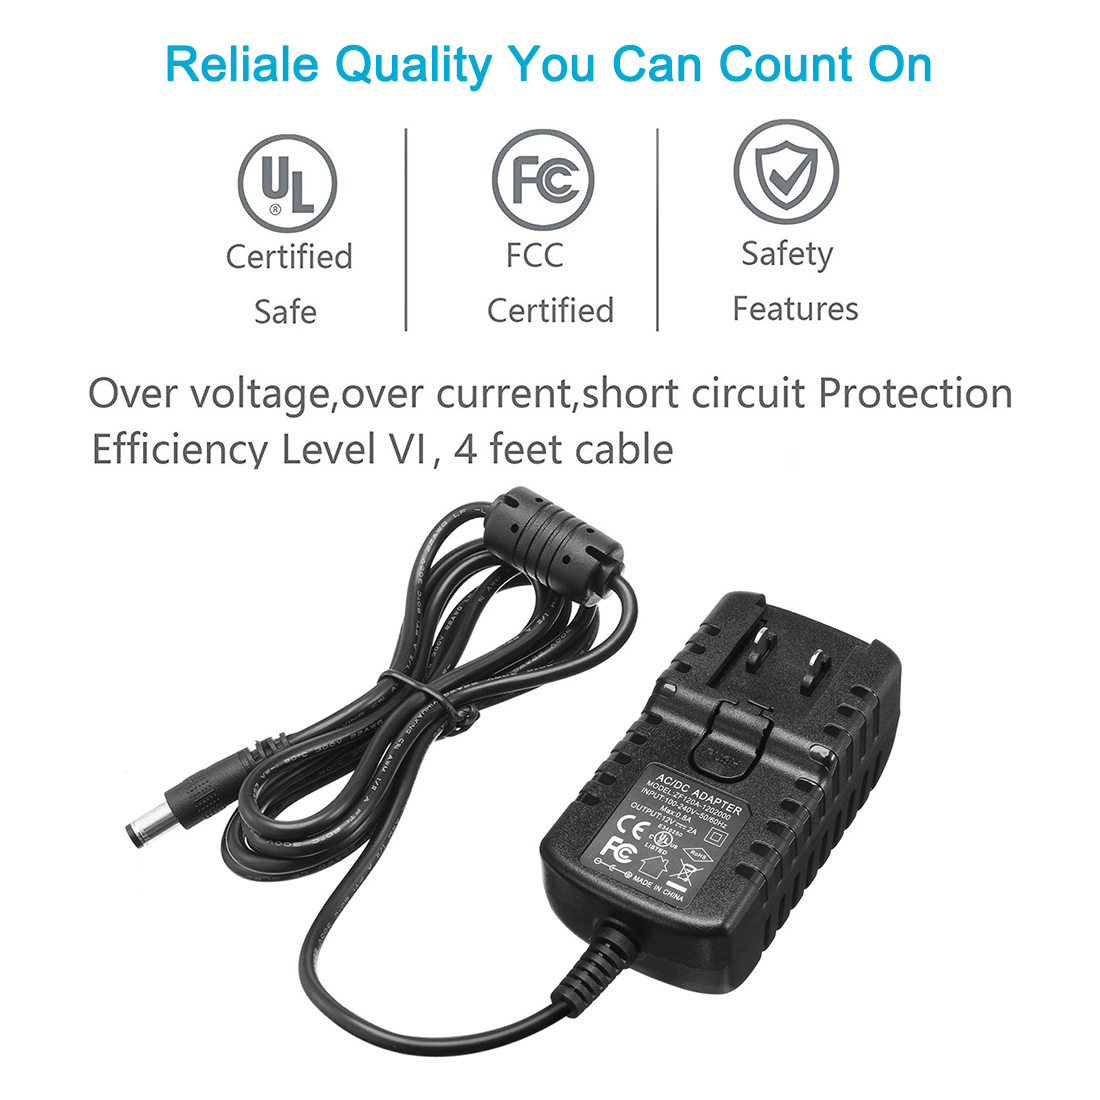 Ac 100 240v To Dc 12v 2a Power Adapter Charger Ul Listed W Au Us Plugs This Is A Regulated Supply With Short Circuit Protection And Qty